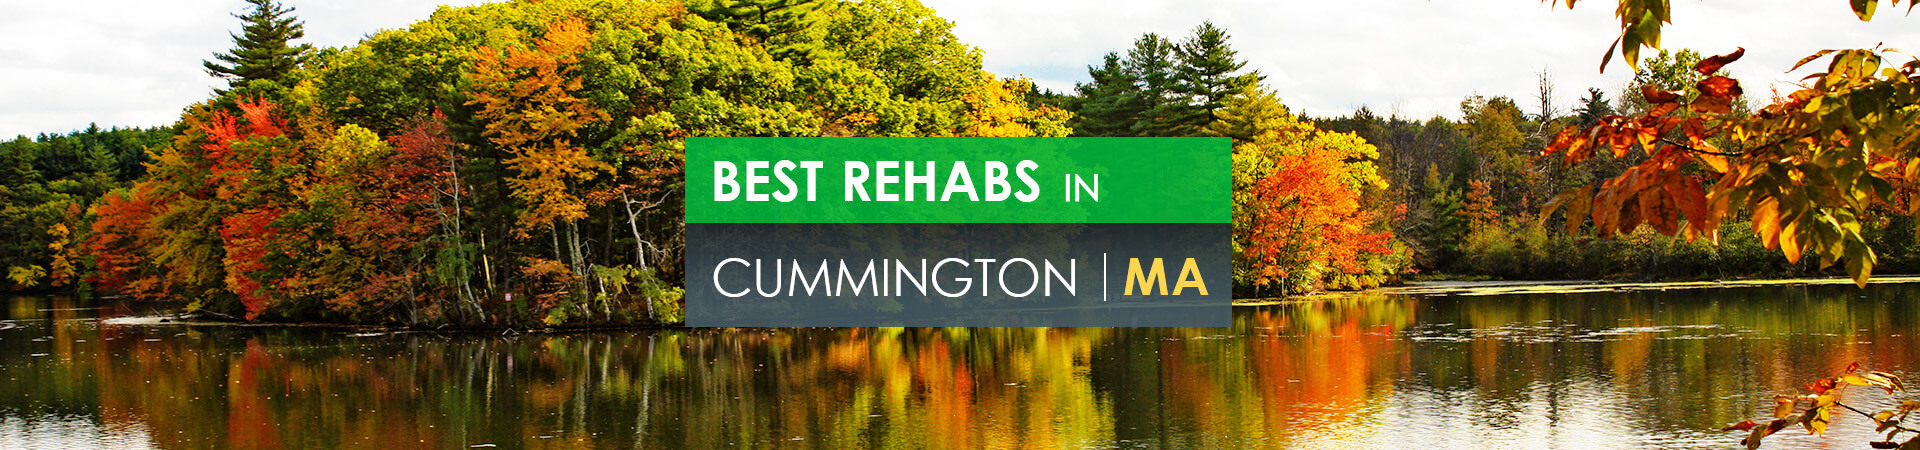 Best rehabs in Cummington, MA